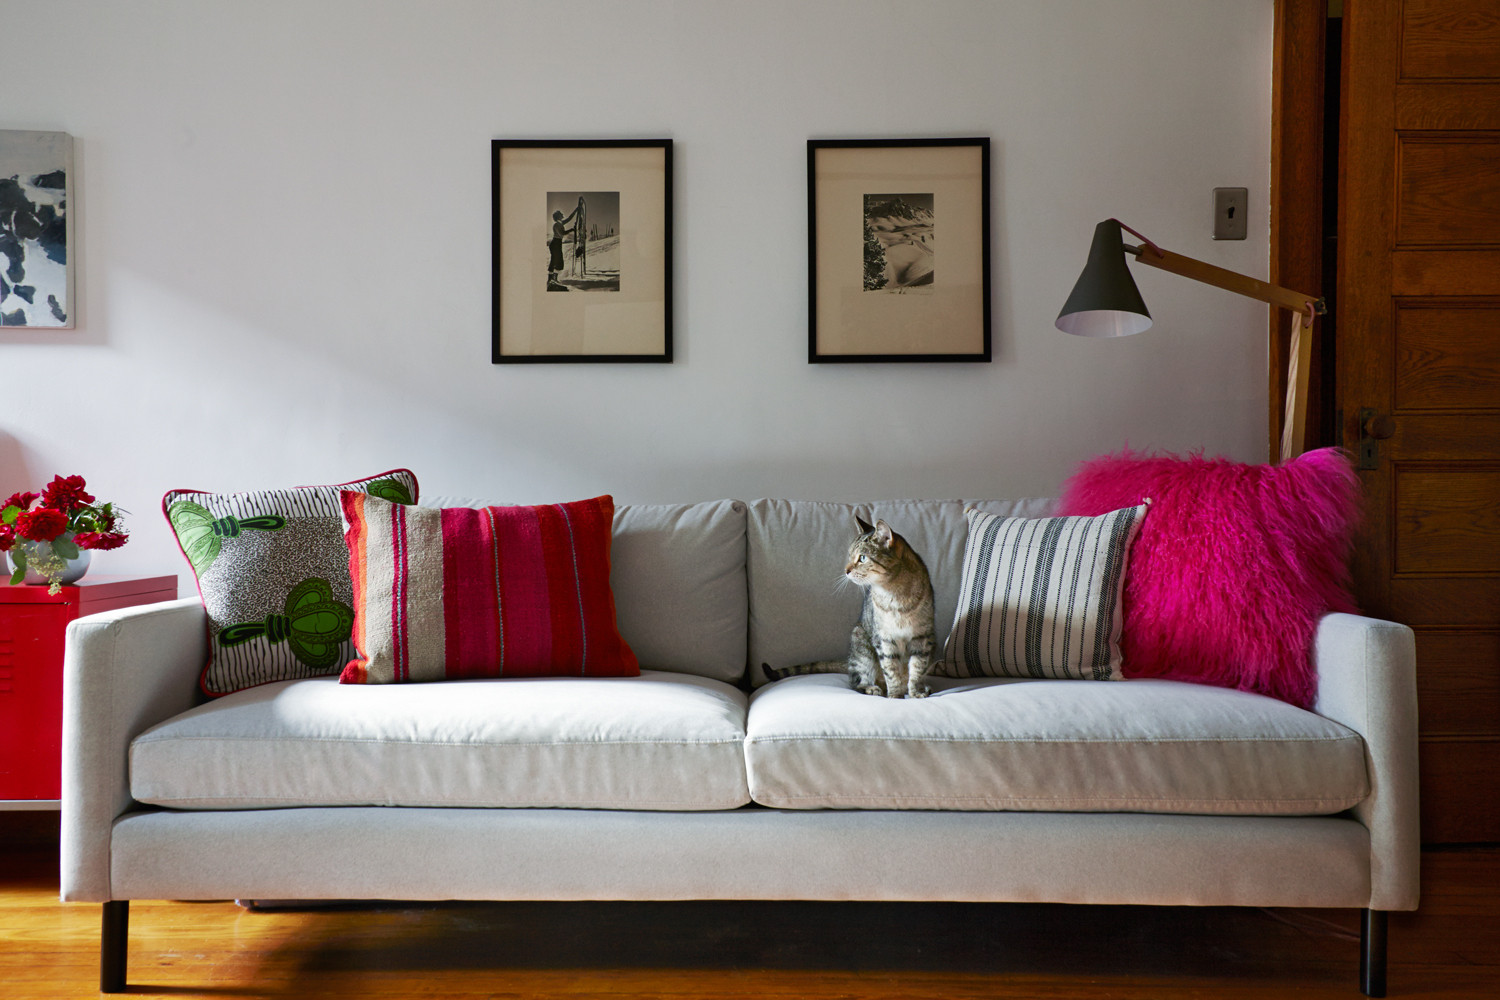 The family cat, Tigger, perches with pride on a new sofa from High Fashion Home. Pillows (from left) from All Things Taj, ABC Carpet & Home (2), and High Fashion Home. Rex Lamp from Crate and Barrel.